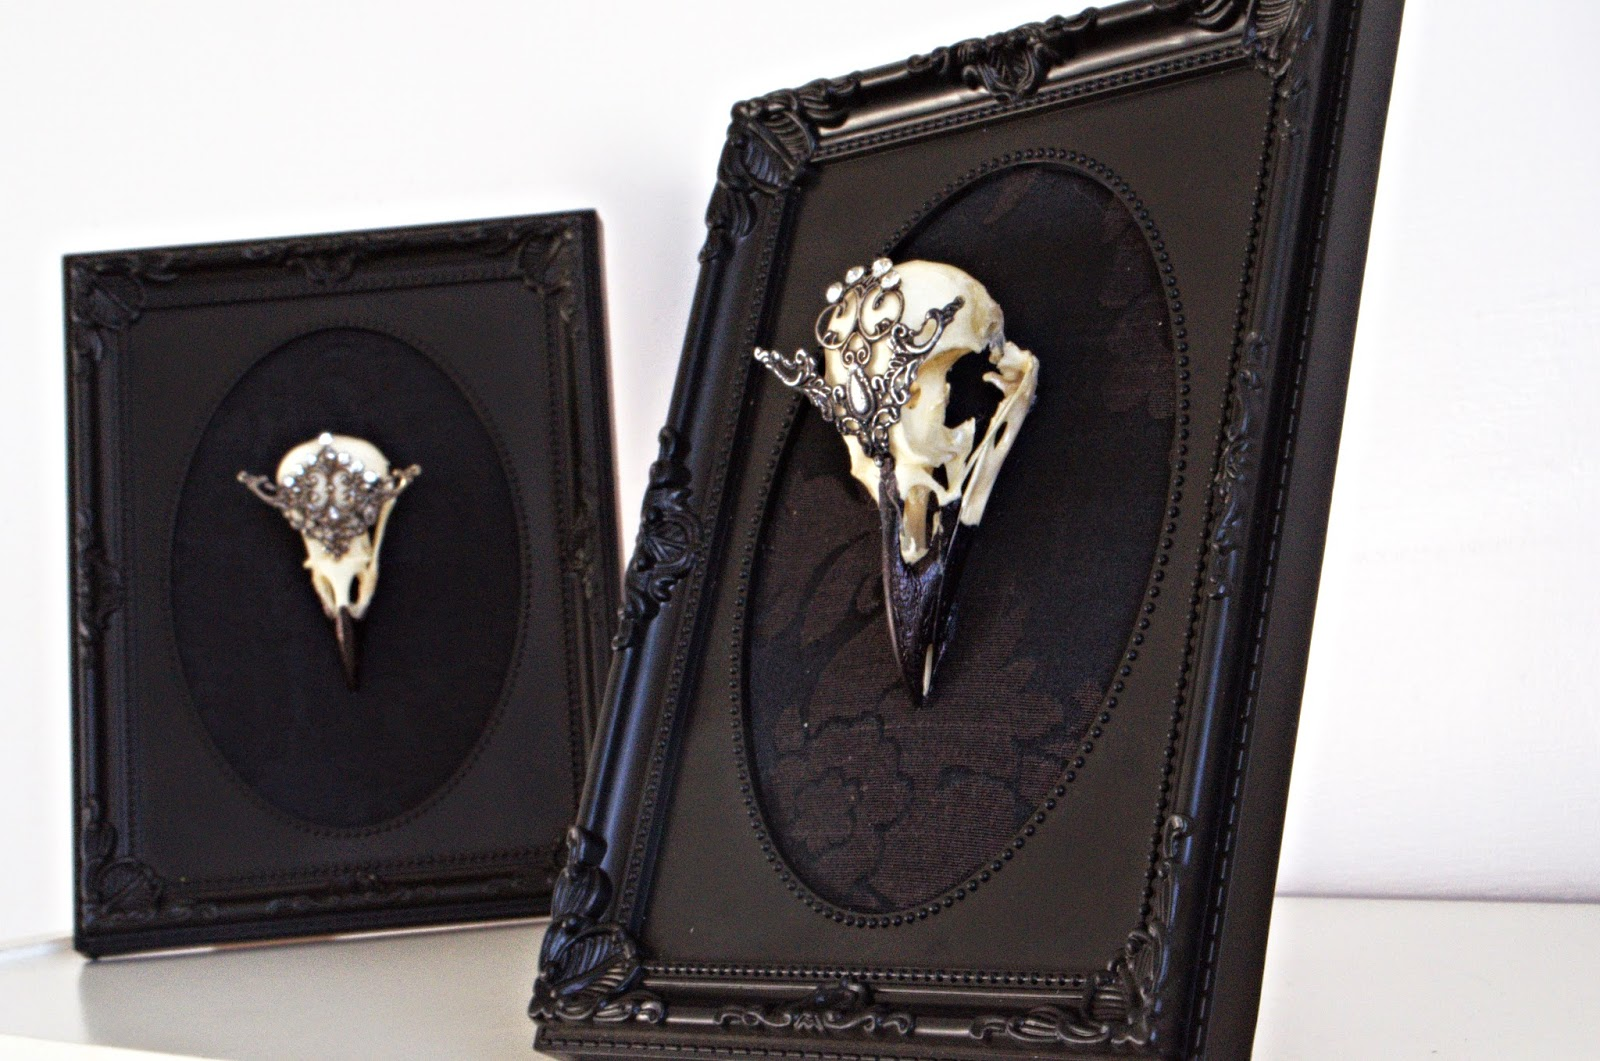 Taxidermy Bird Skull on Gothic Picture Frame. Christmas Gift Ideas.